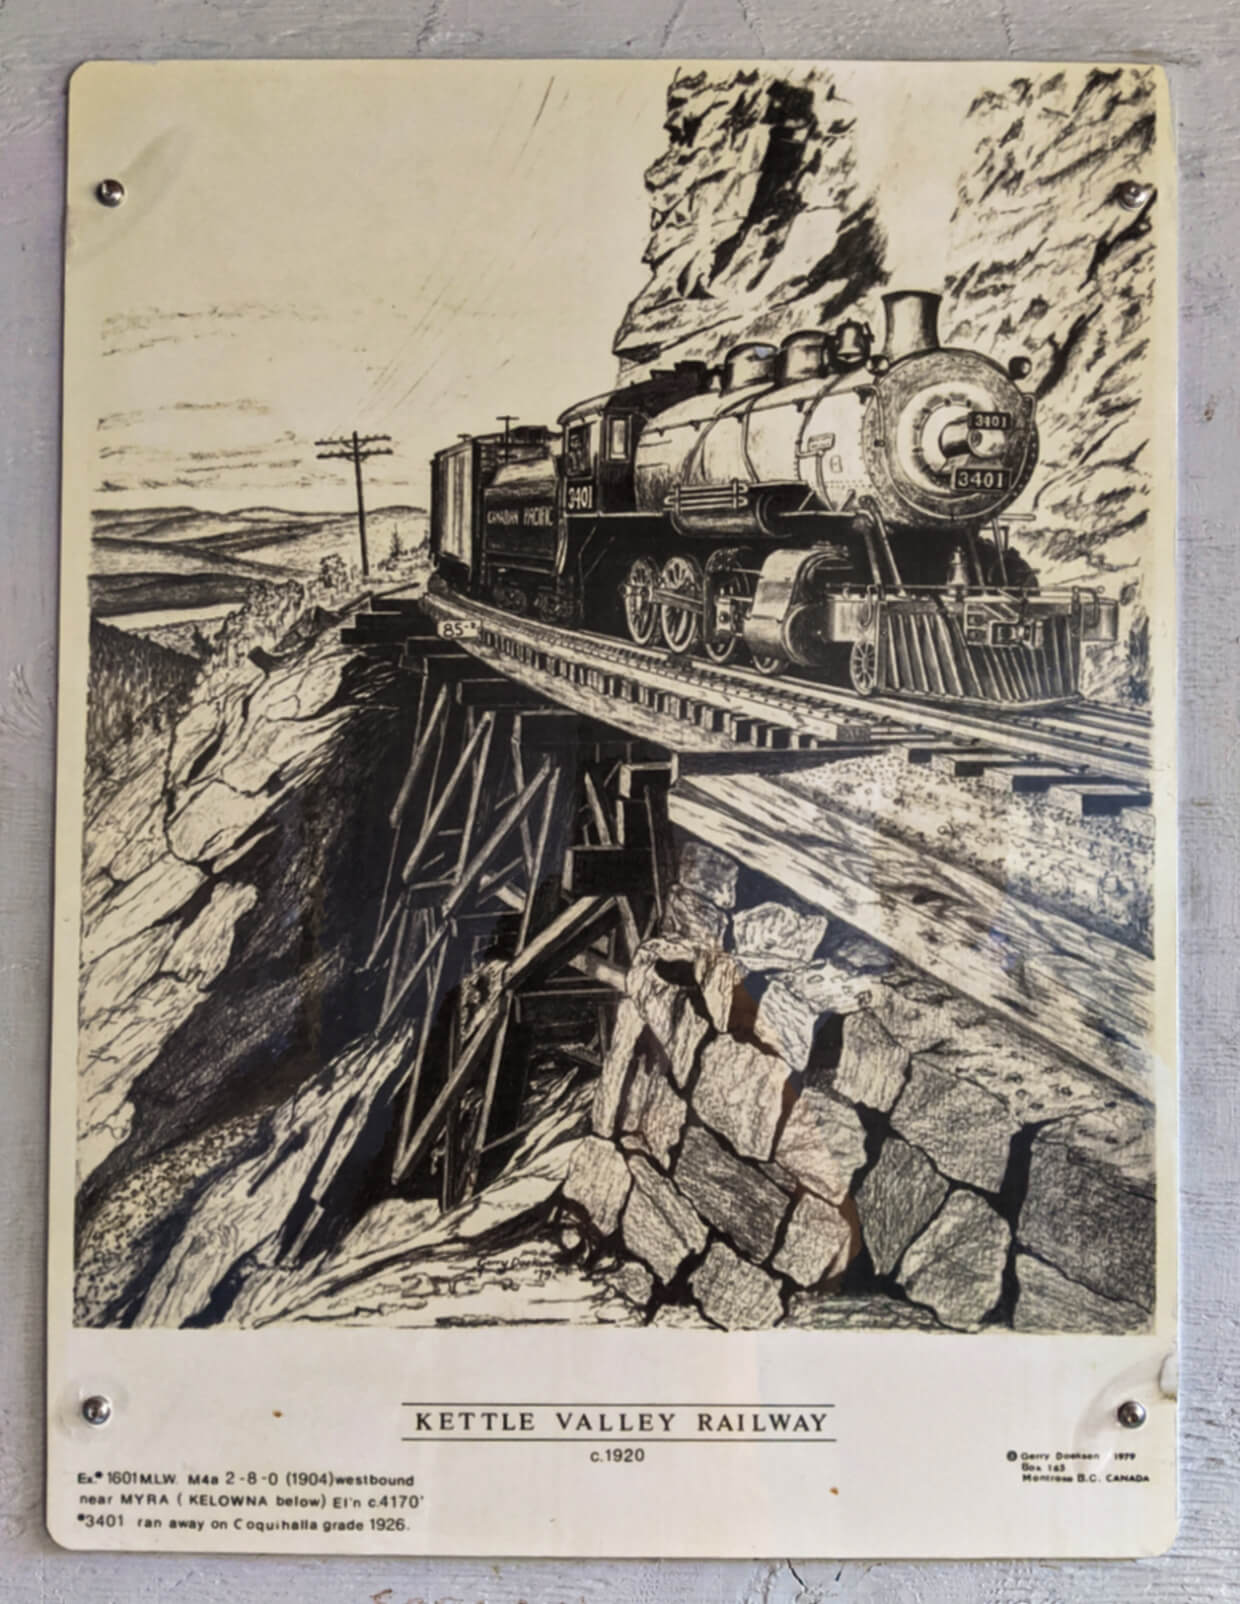 Drawing of Kettle Valley Railway in 1920 with steam train crossing wooden trestle bridge